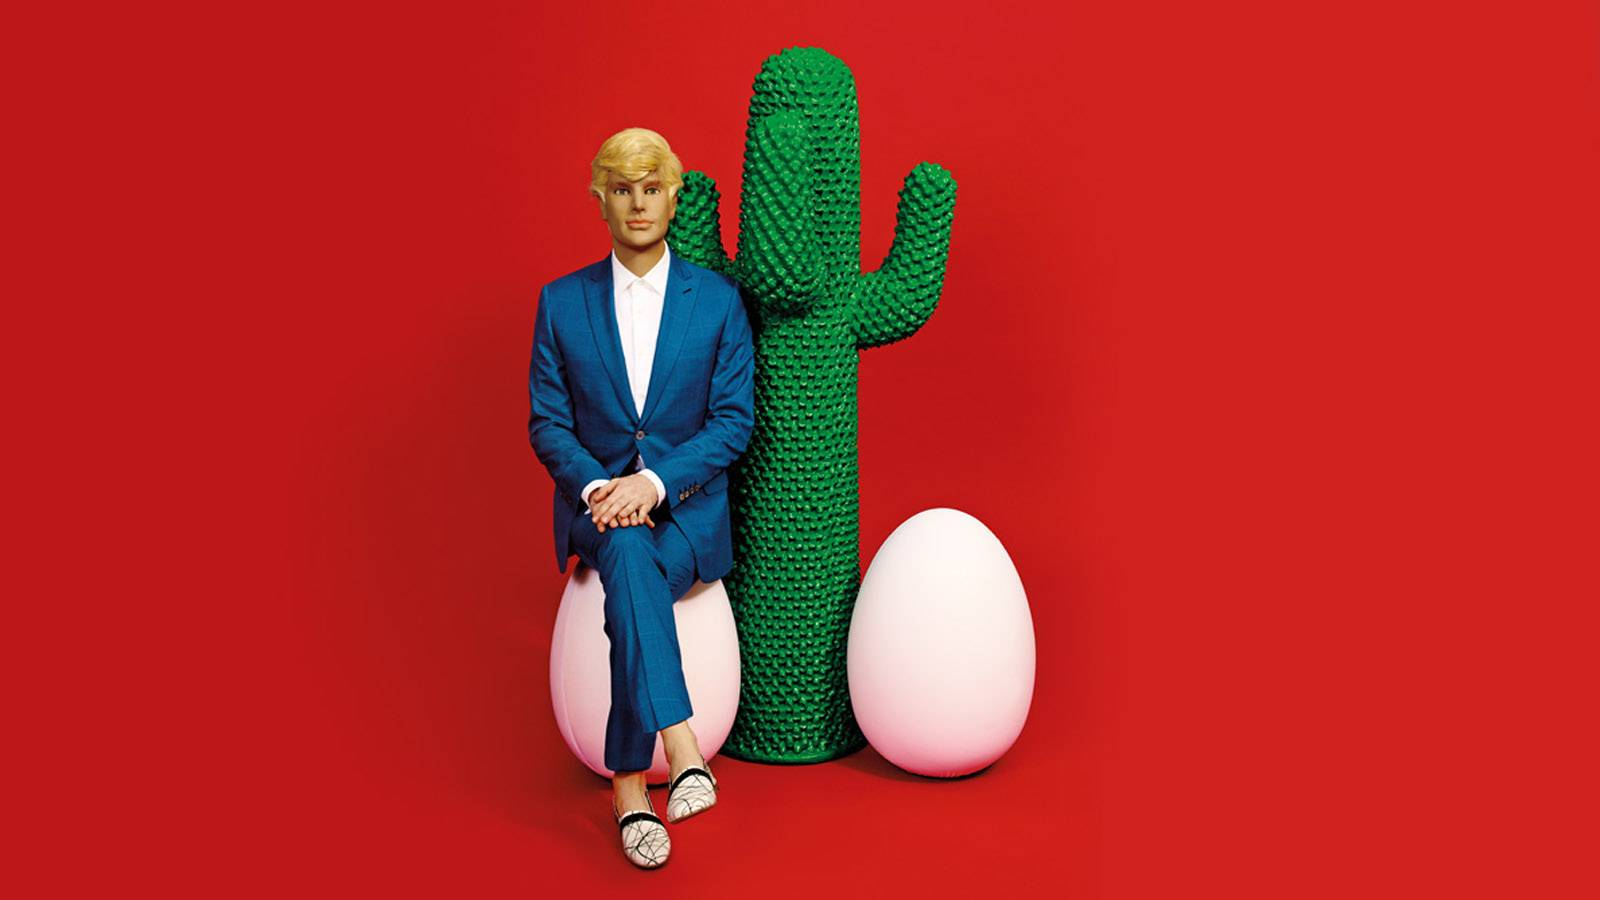 Gufram furniture cactus and egg on a red background with a mannequin